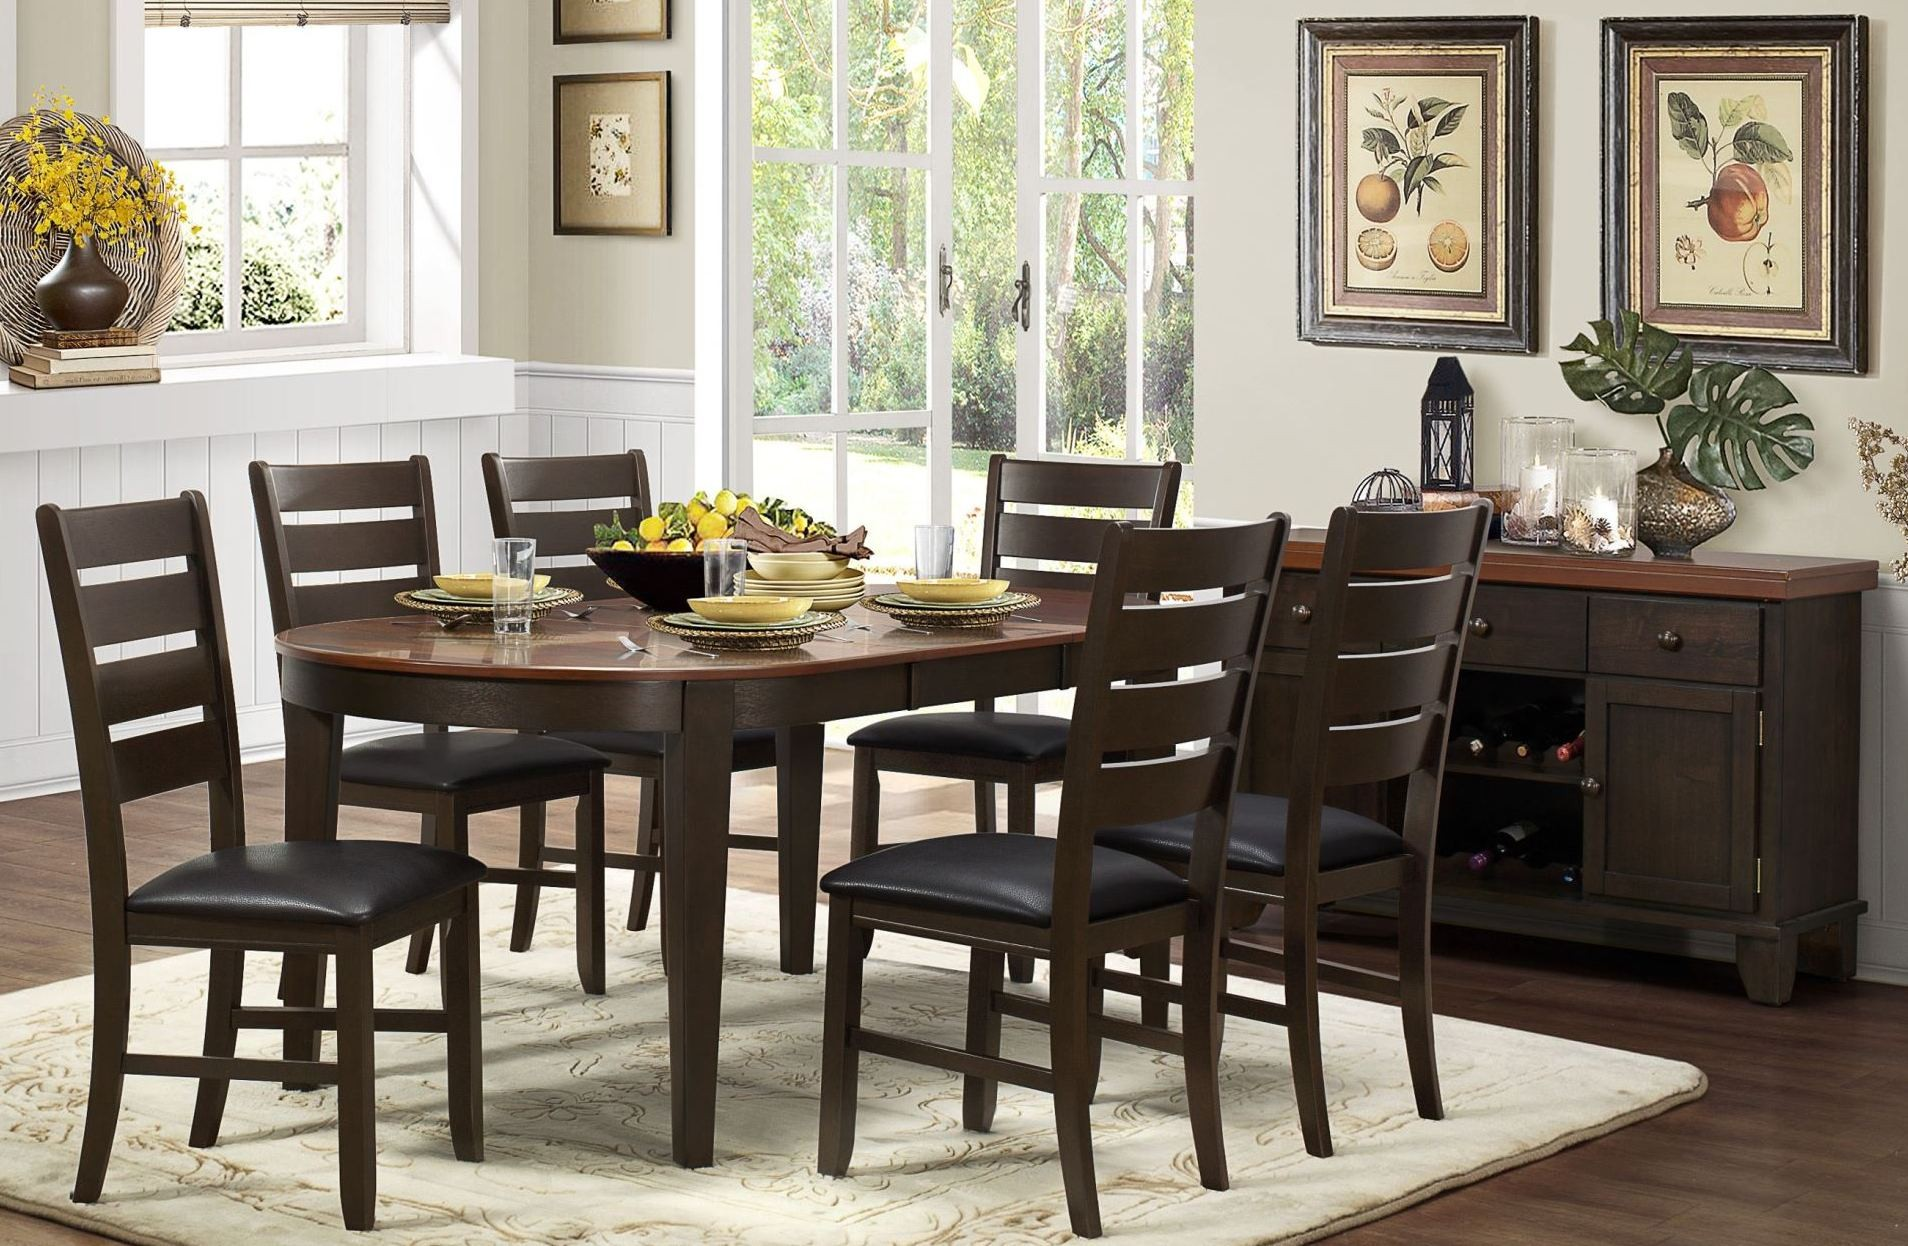 Grunwald dark brown uv coating top dining room set from for Dark brown dining room